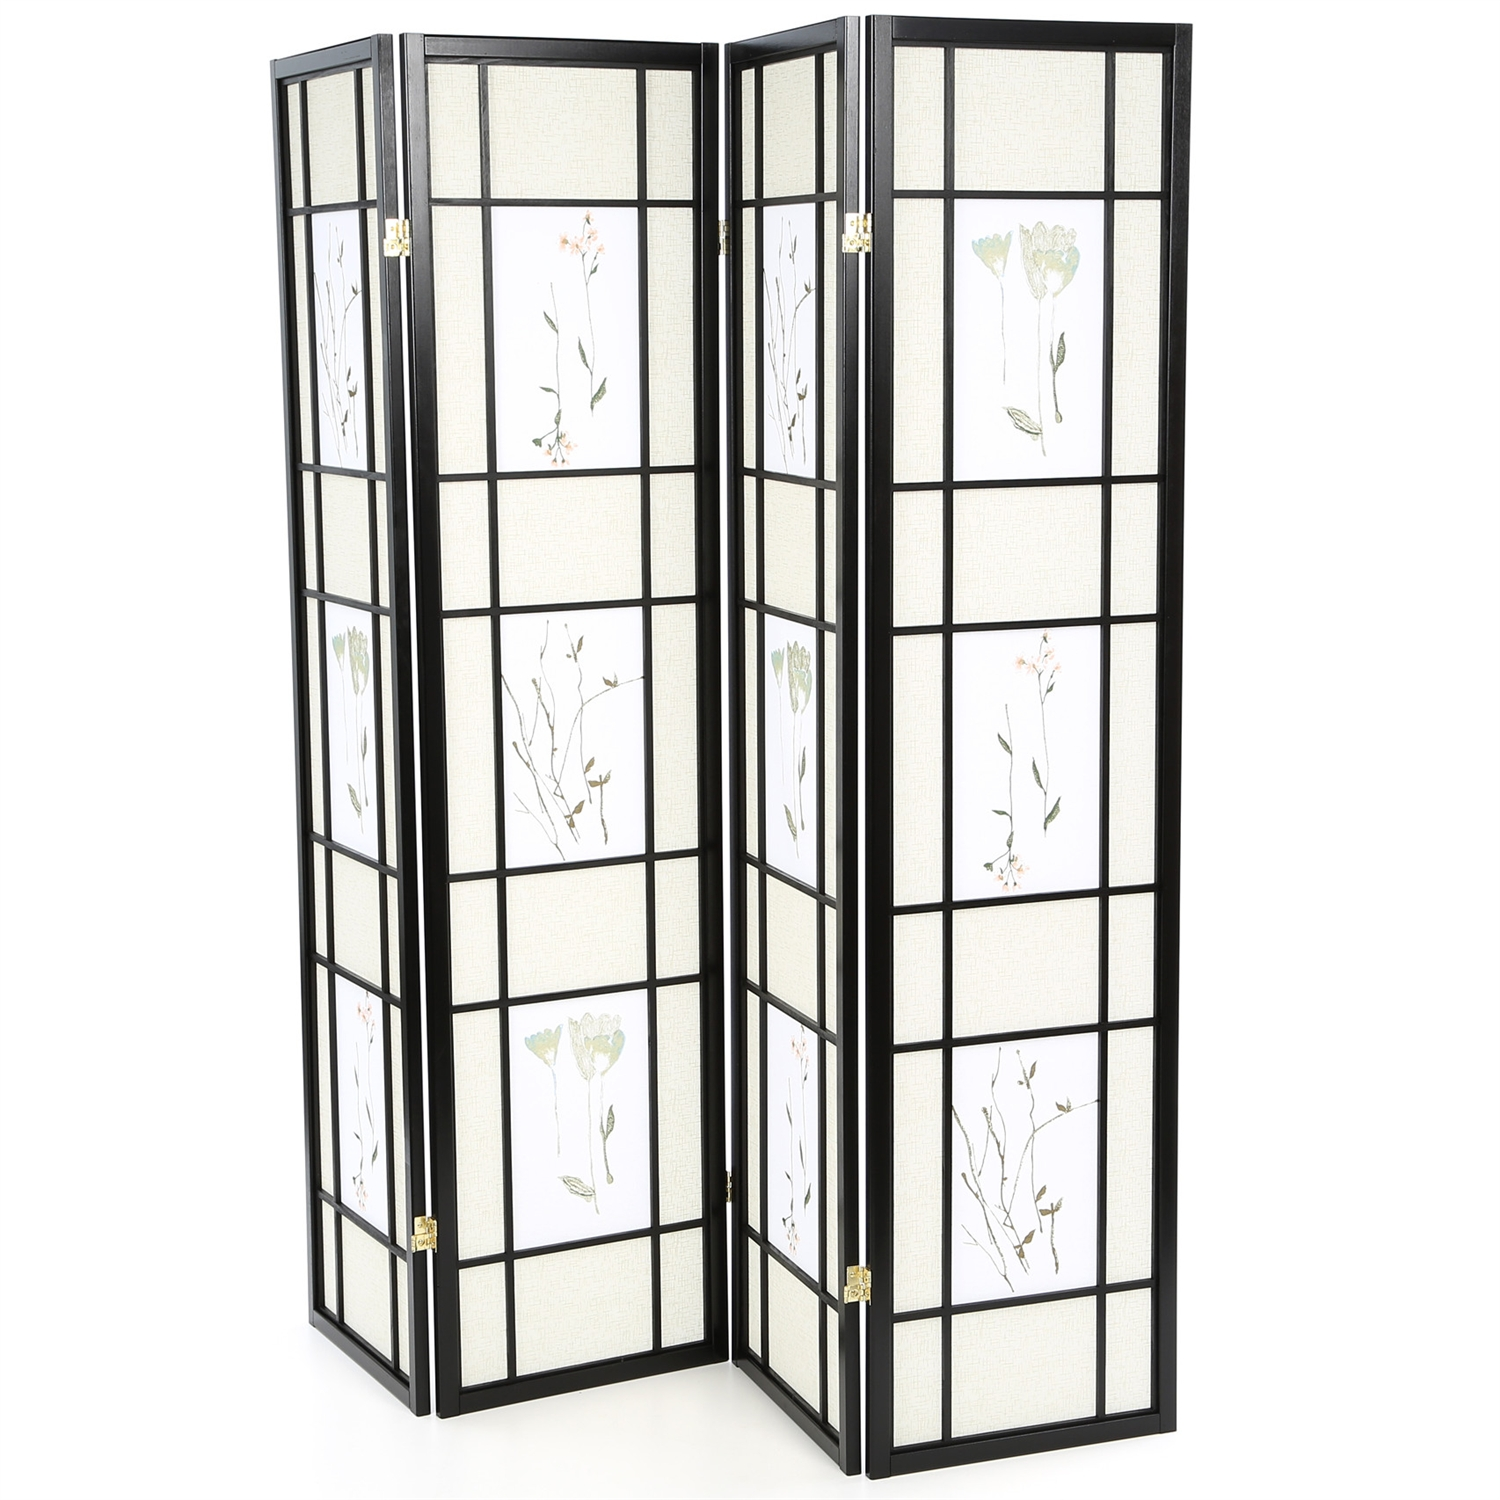 Incredible Black 4 Panel Room Divider Shoji Screen With Asian Floral Print Home Interior And Landscaping Analalmasignezvosmurscom